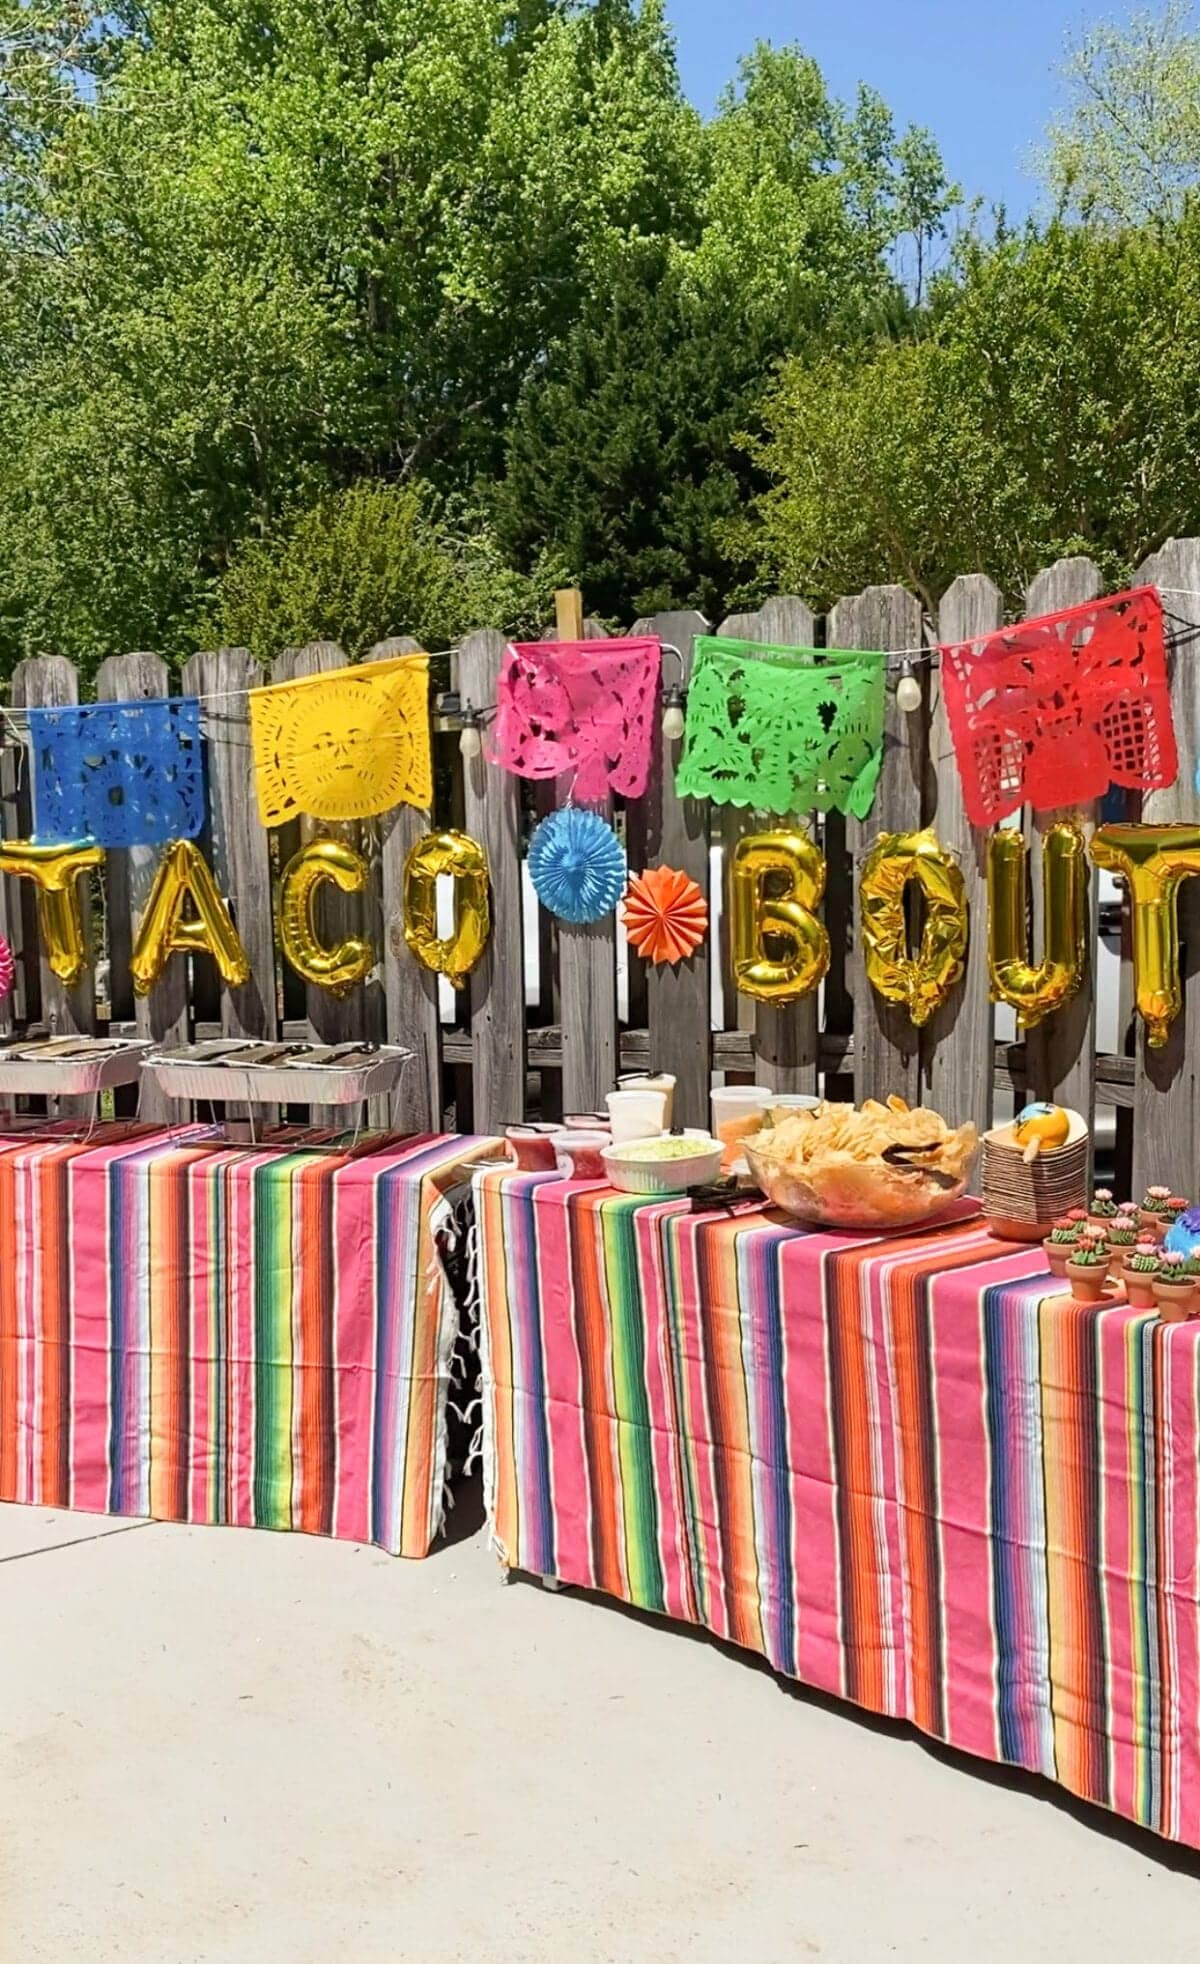 baby shower taco bar decorated with Mexican serape tablecloths, banners, and Taco Bout a Baby balloons